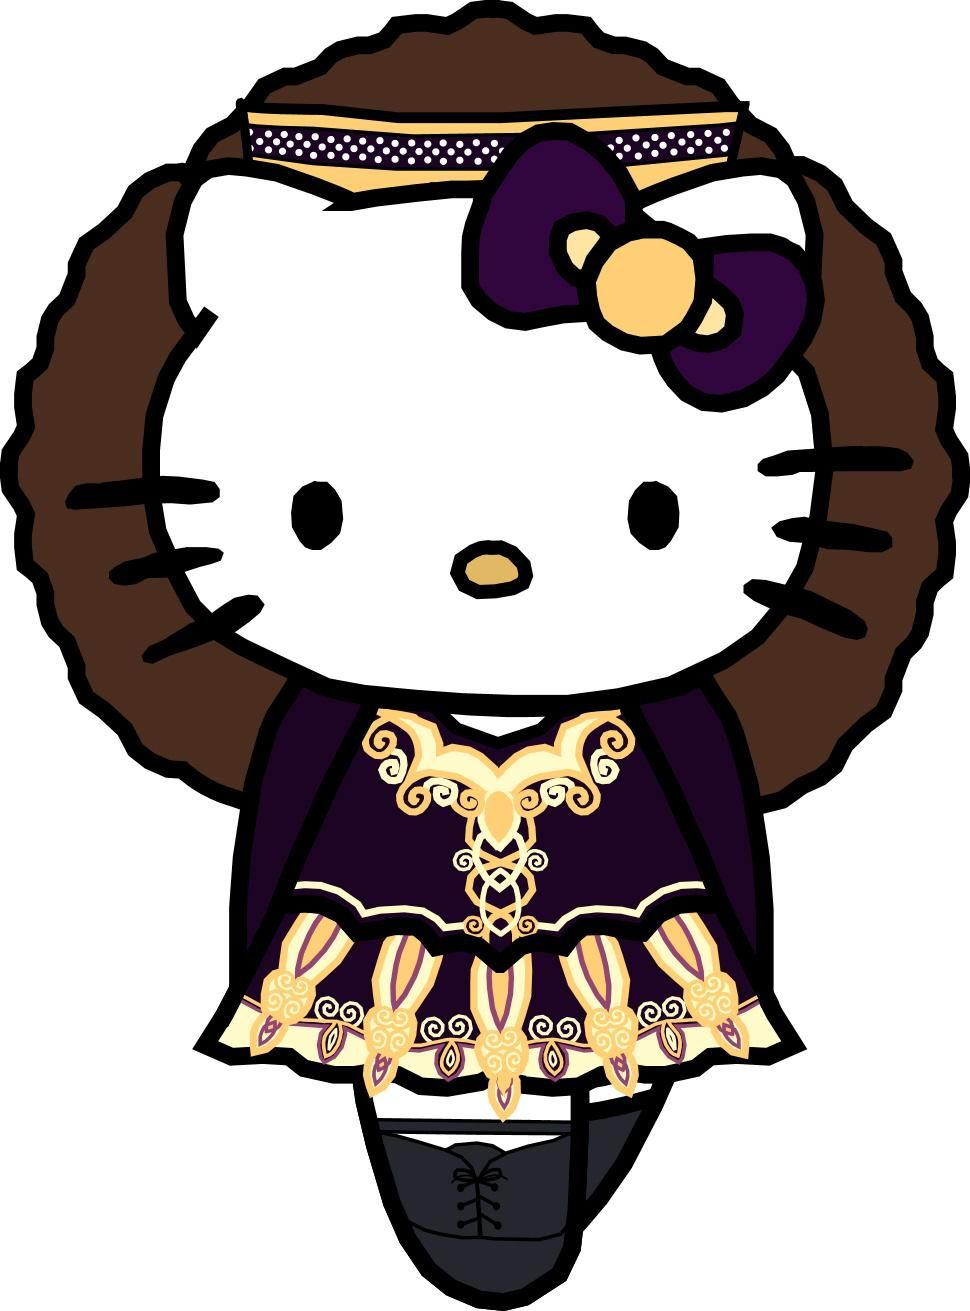 Oh My Goodness Irish Dance Hello Kitty Now That S Awesome Hello Kitty Is Very Very Personalized Hello Kitty Kitty Irish Dance